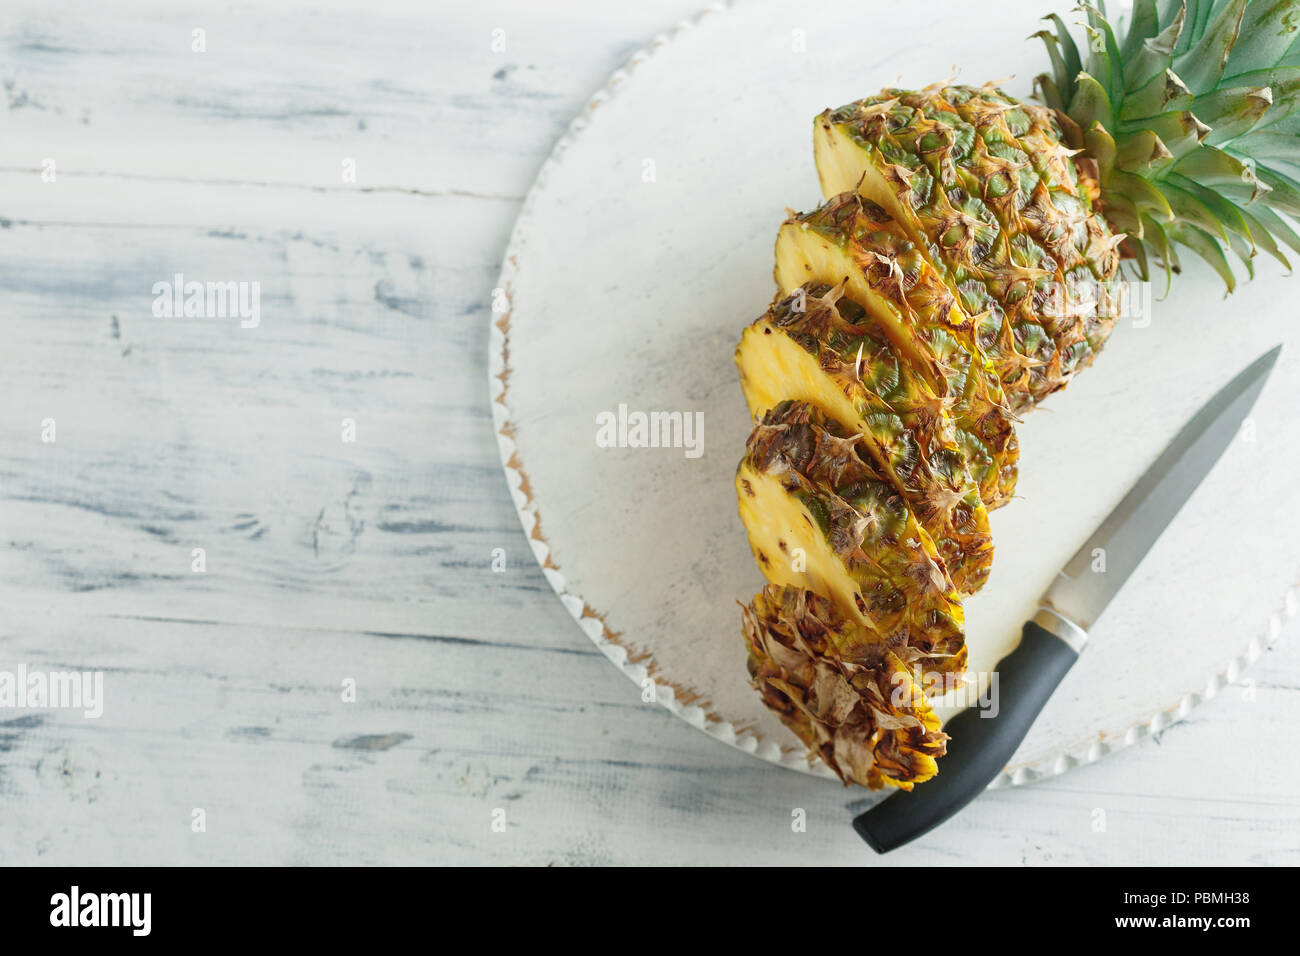 Fresh sliced pineapple on a white wooden cutting board. Top view - Stock Image